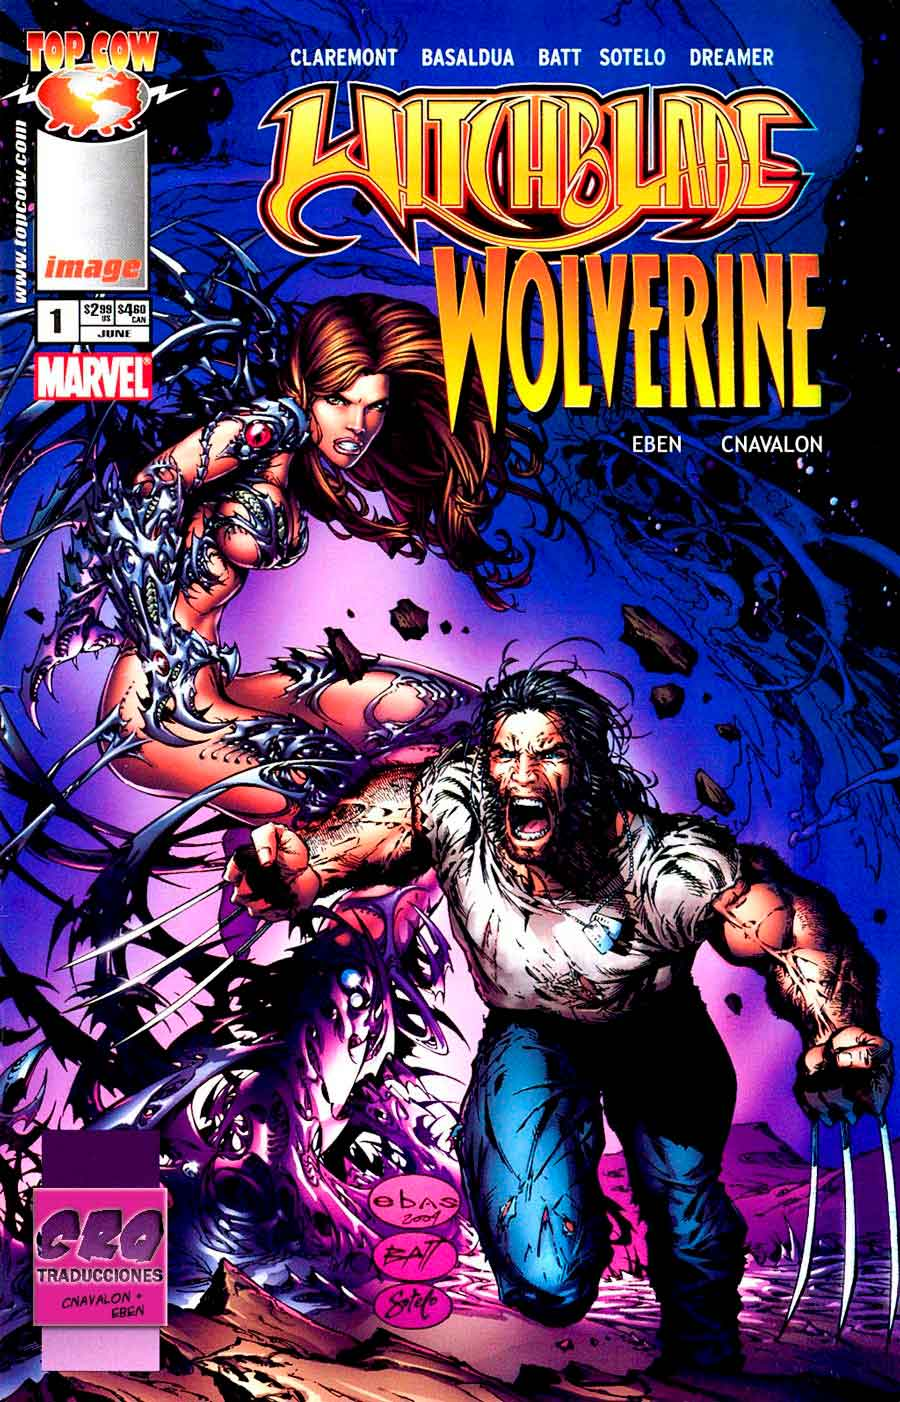 Wolverine y Witchblade crossover